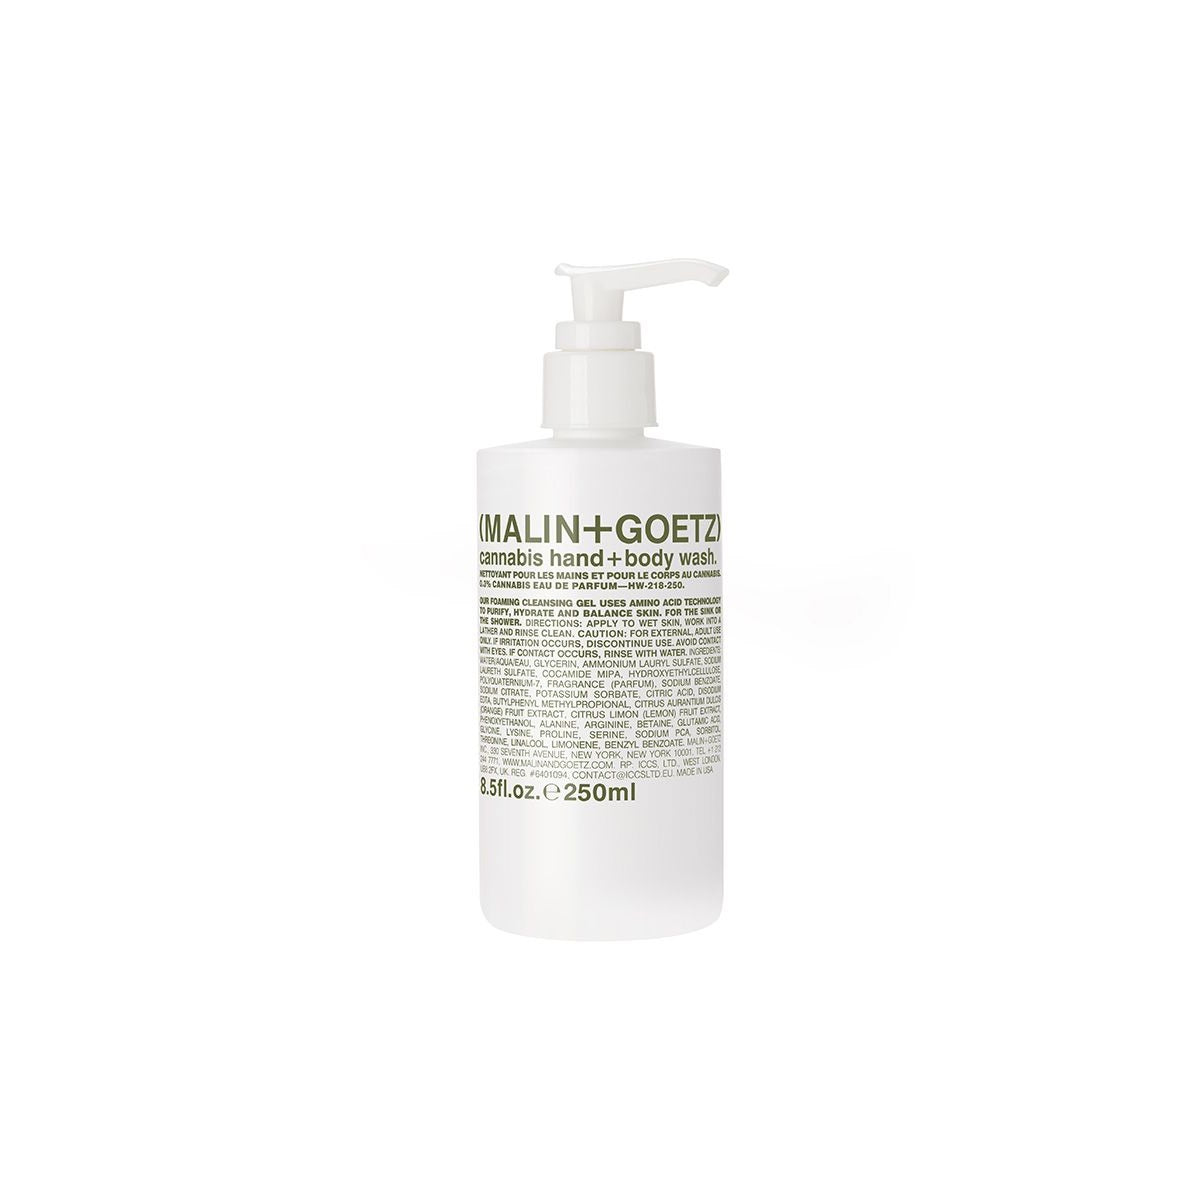 CANNABIS HAND+BODY WASH